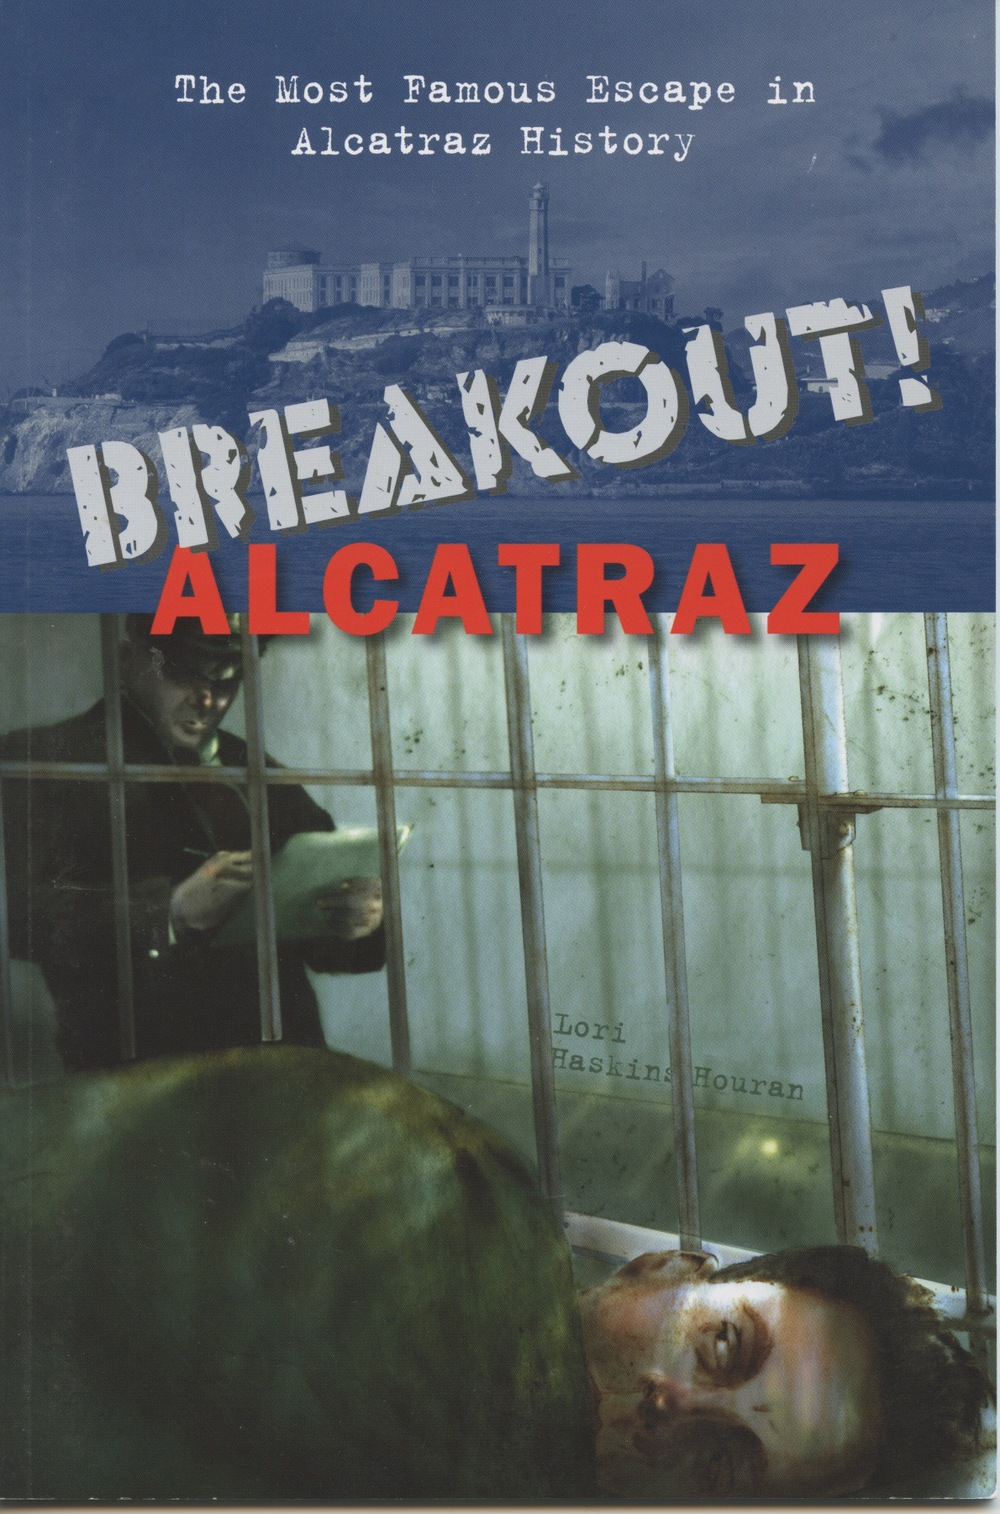 Alcatraz cover.jpeg